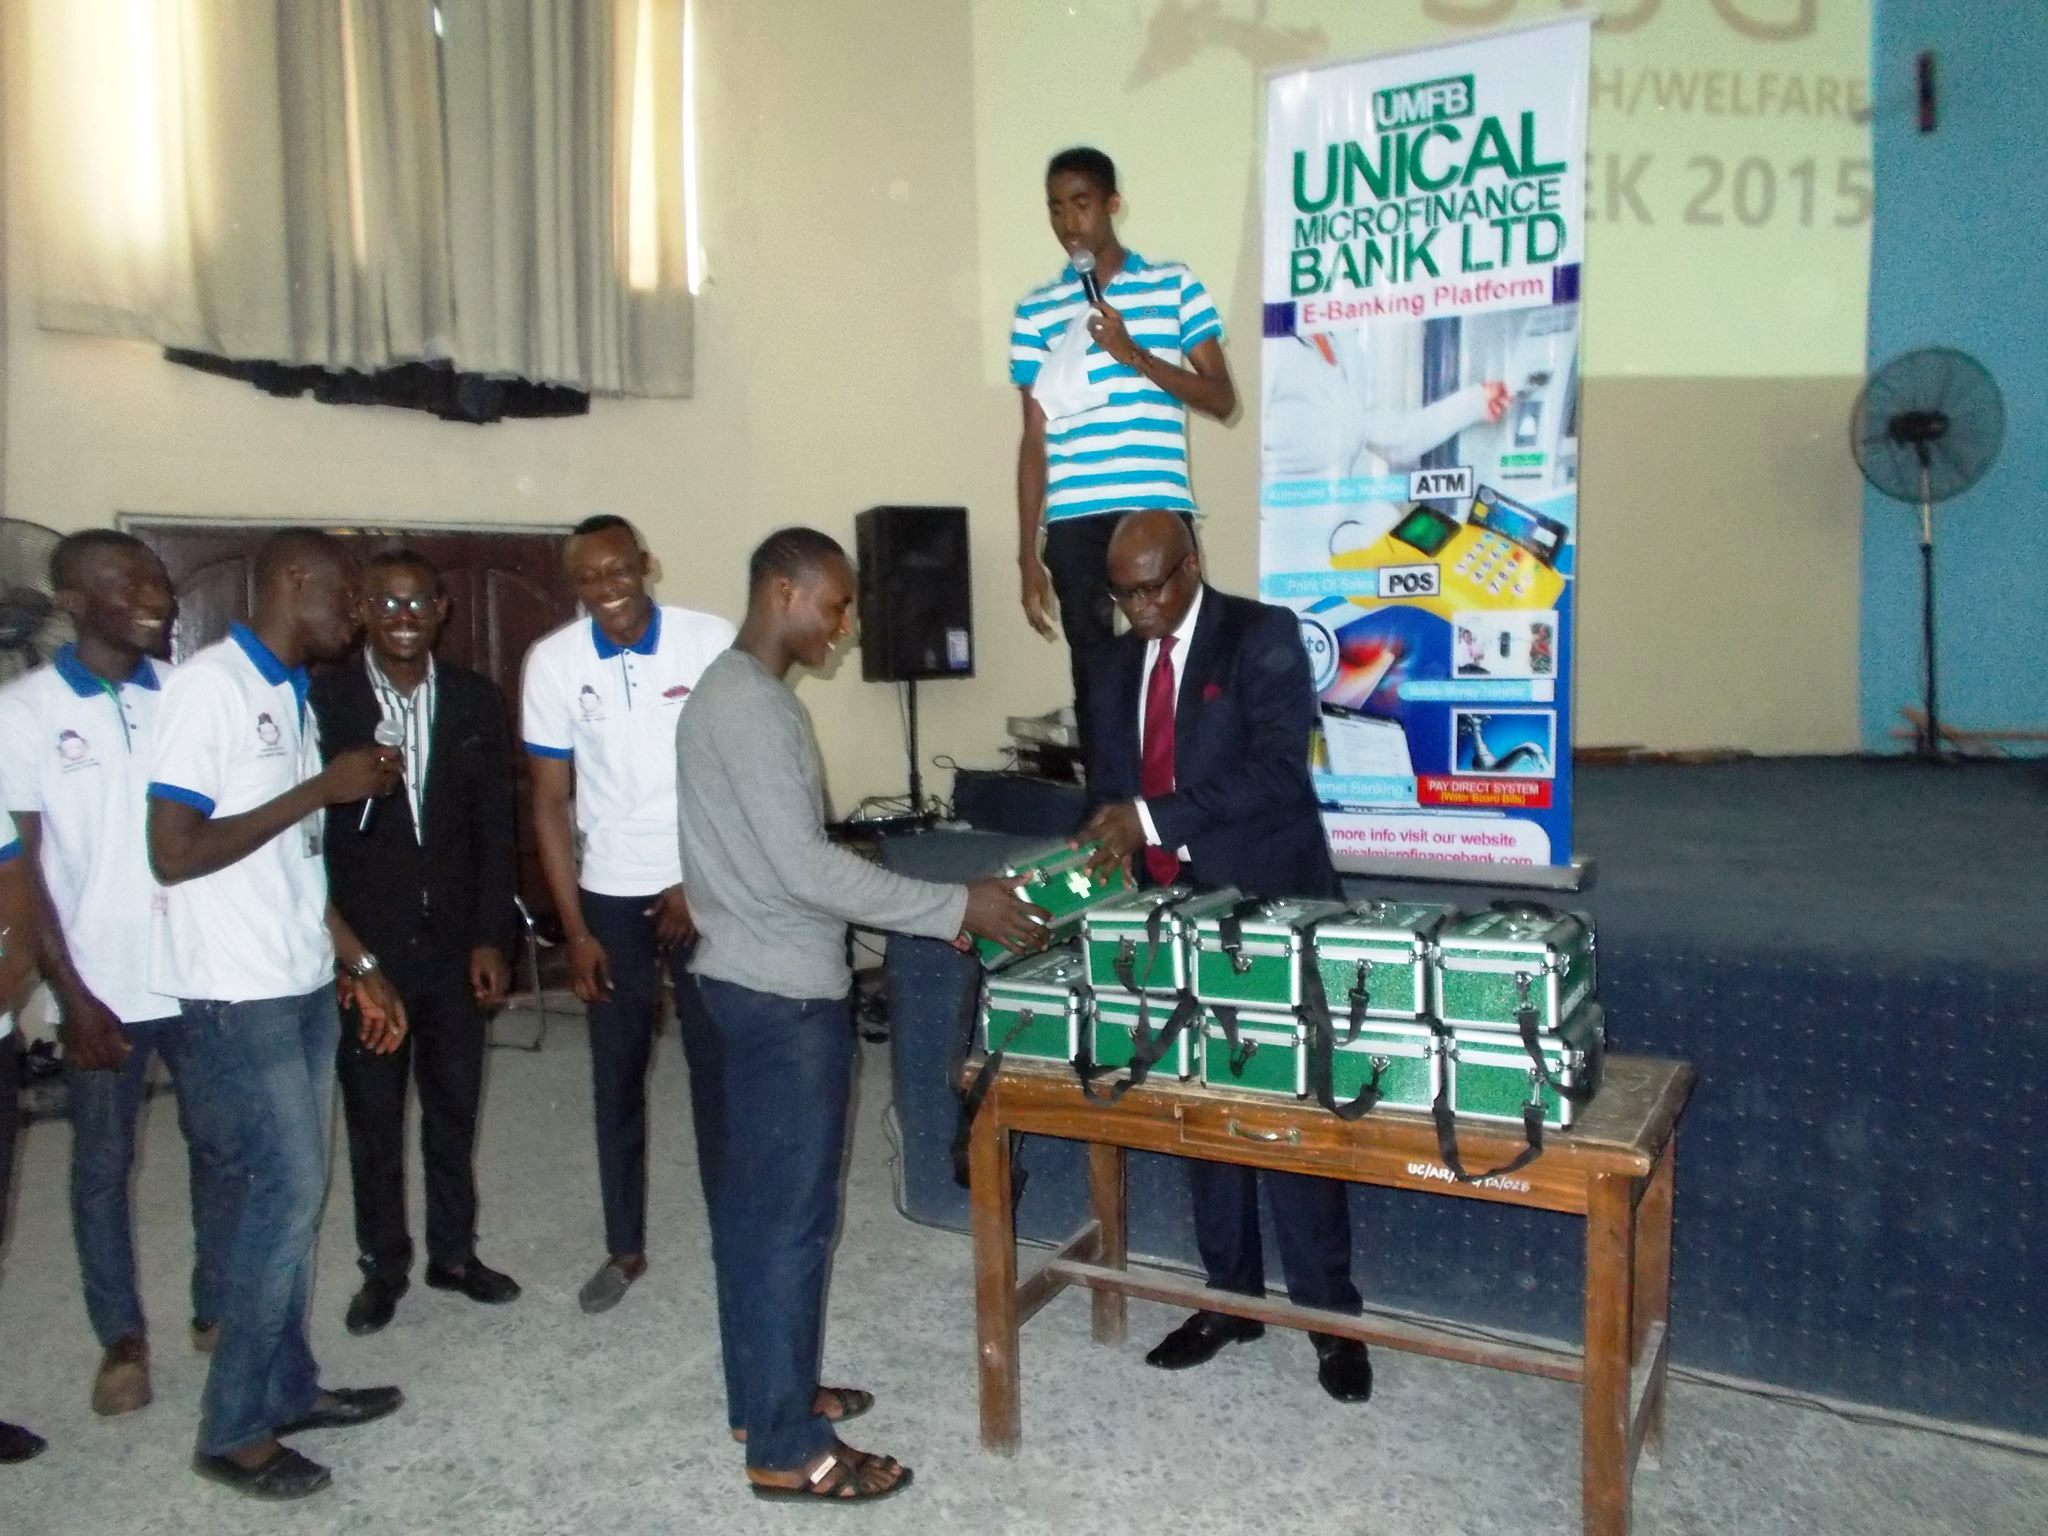 Manager, UNICAL Micro Finance Bank displaying first aid boxes to SUG officials at the event